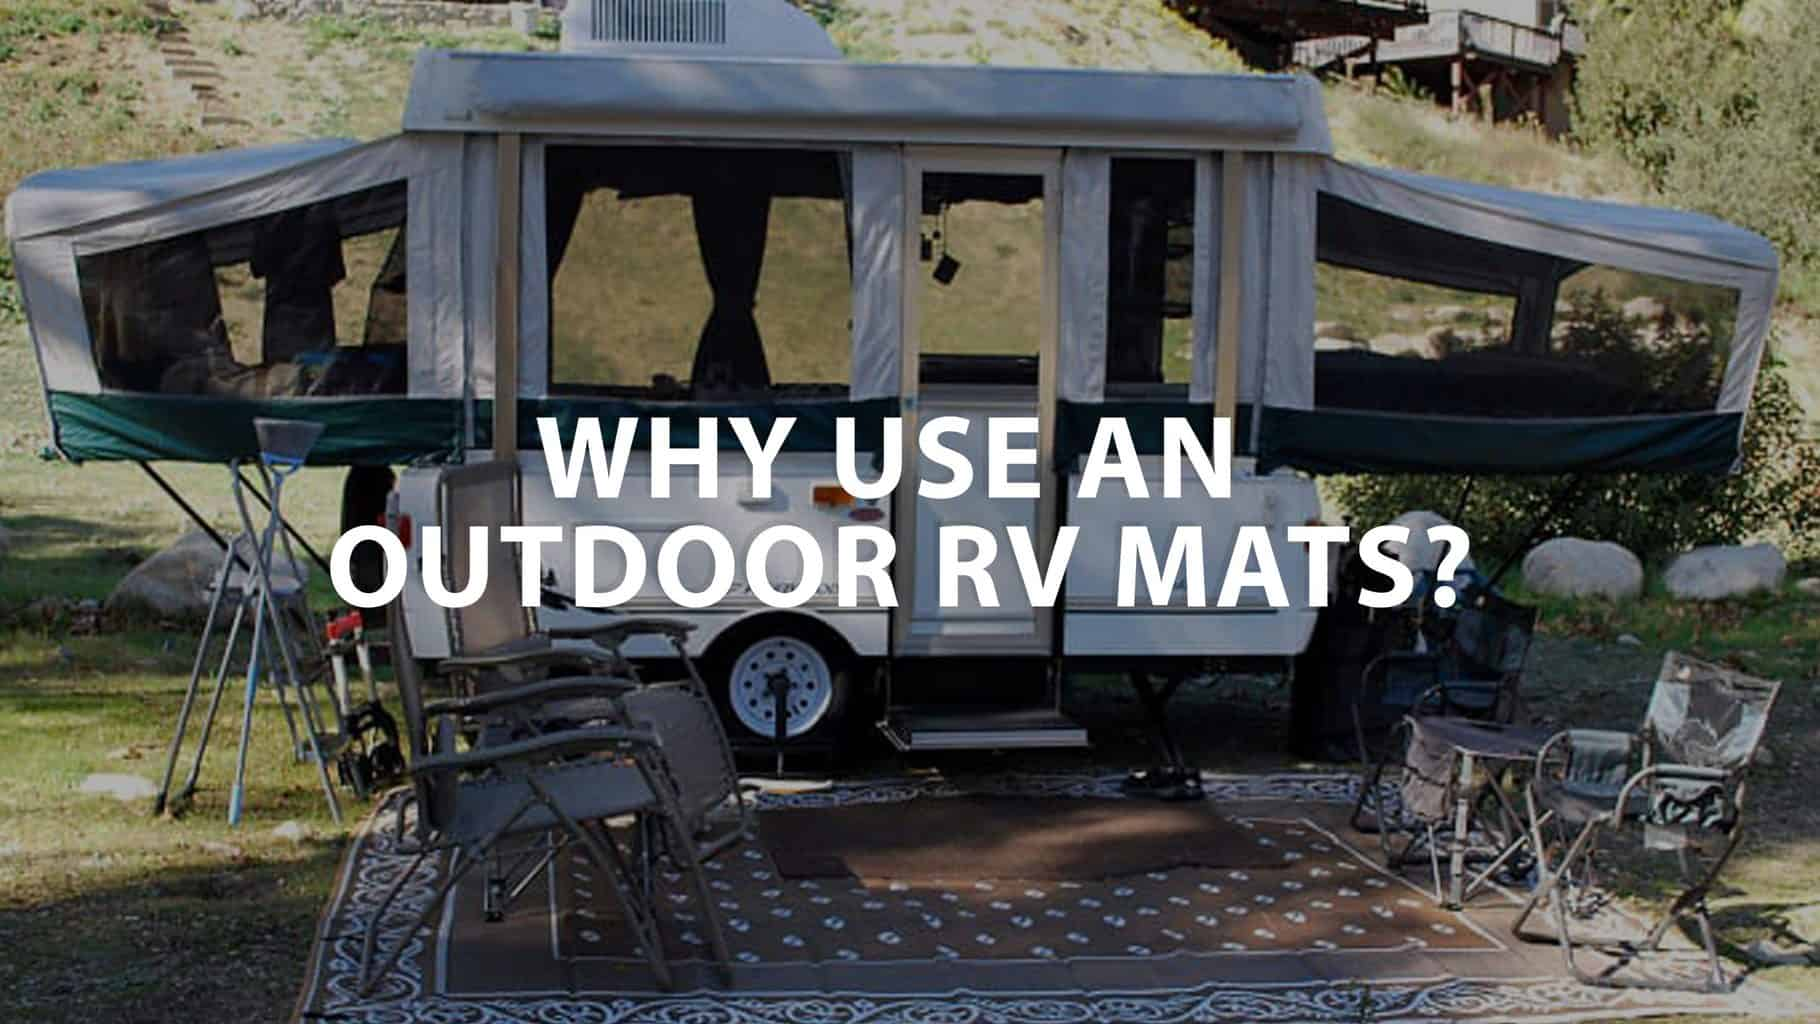 featured image on Why Use an Outdoor RV Mats